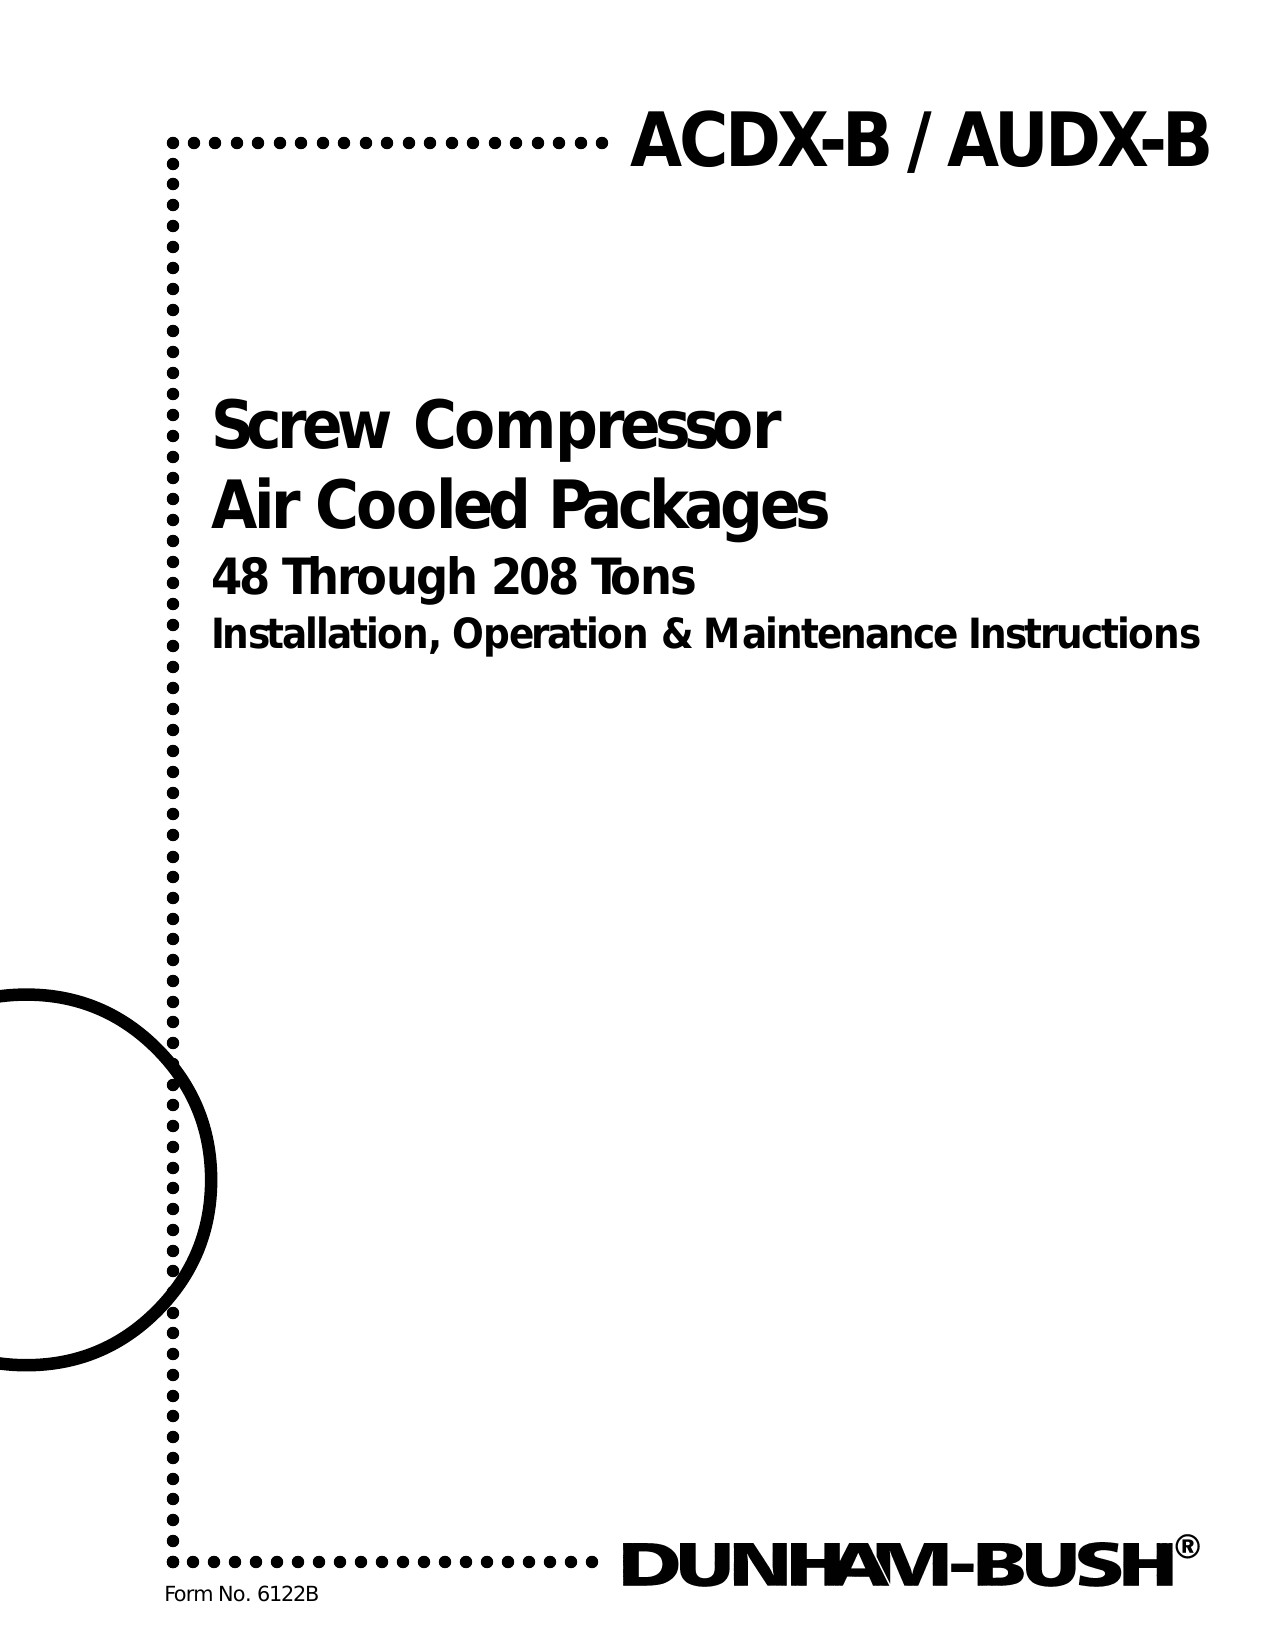 Tecumseh How To Re Wire Relay For Compressor